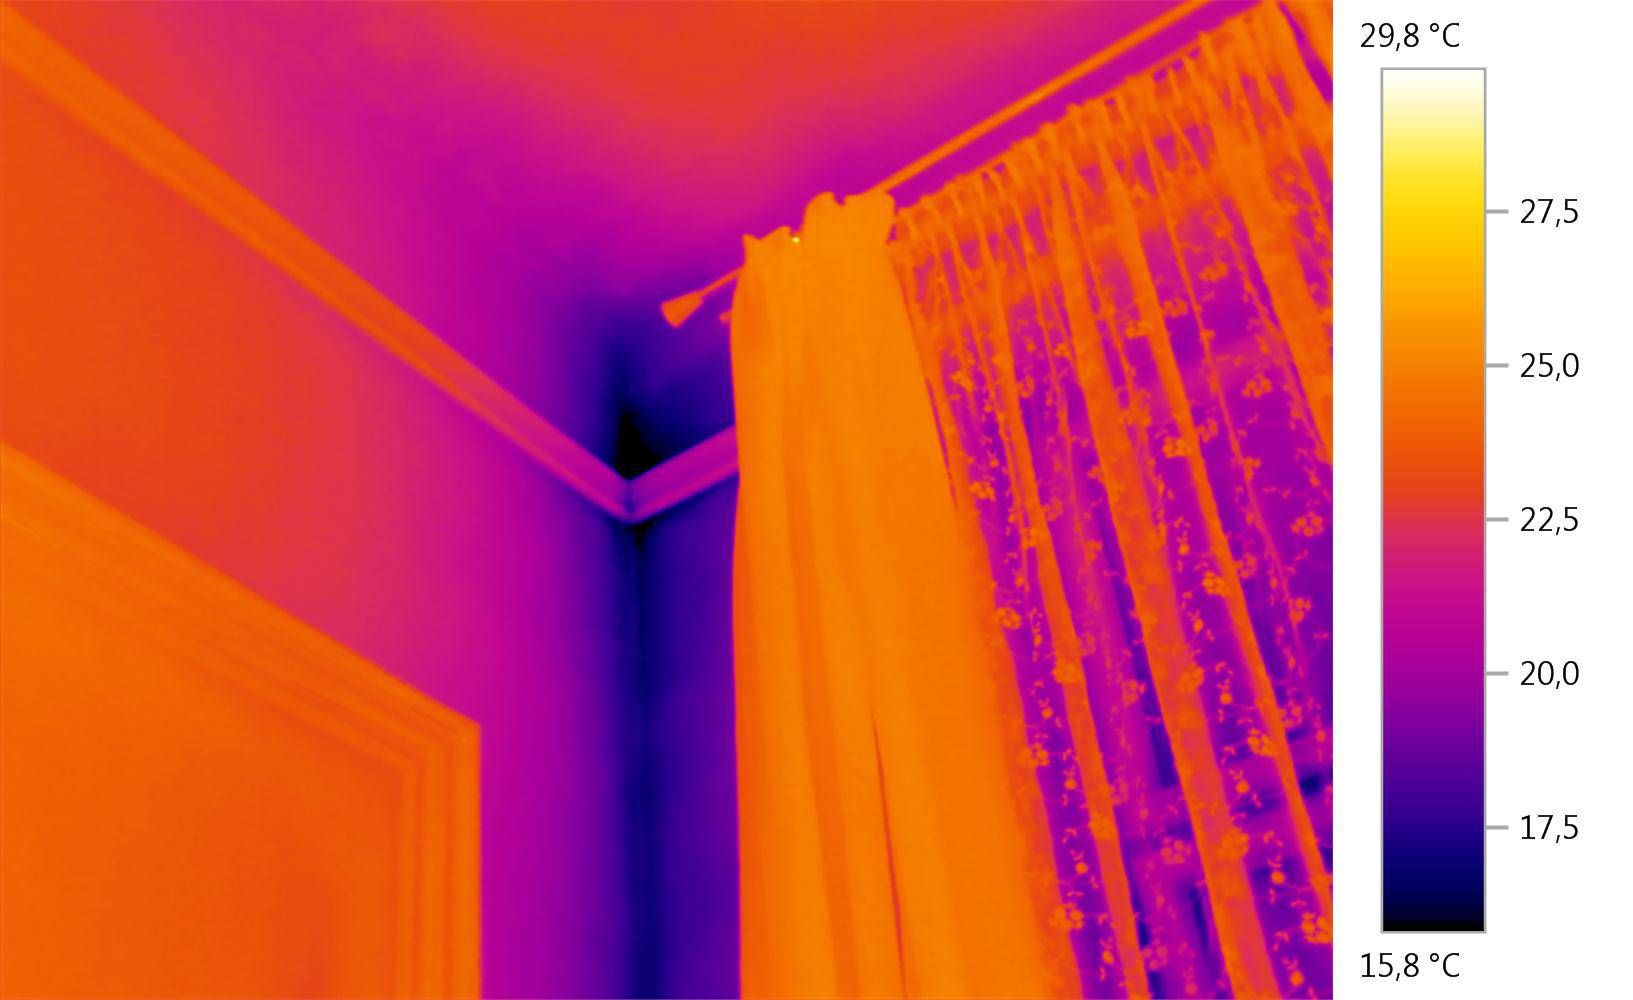 location-thermography-003818.jpg